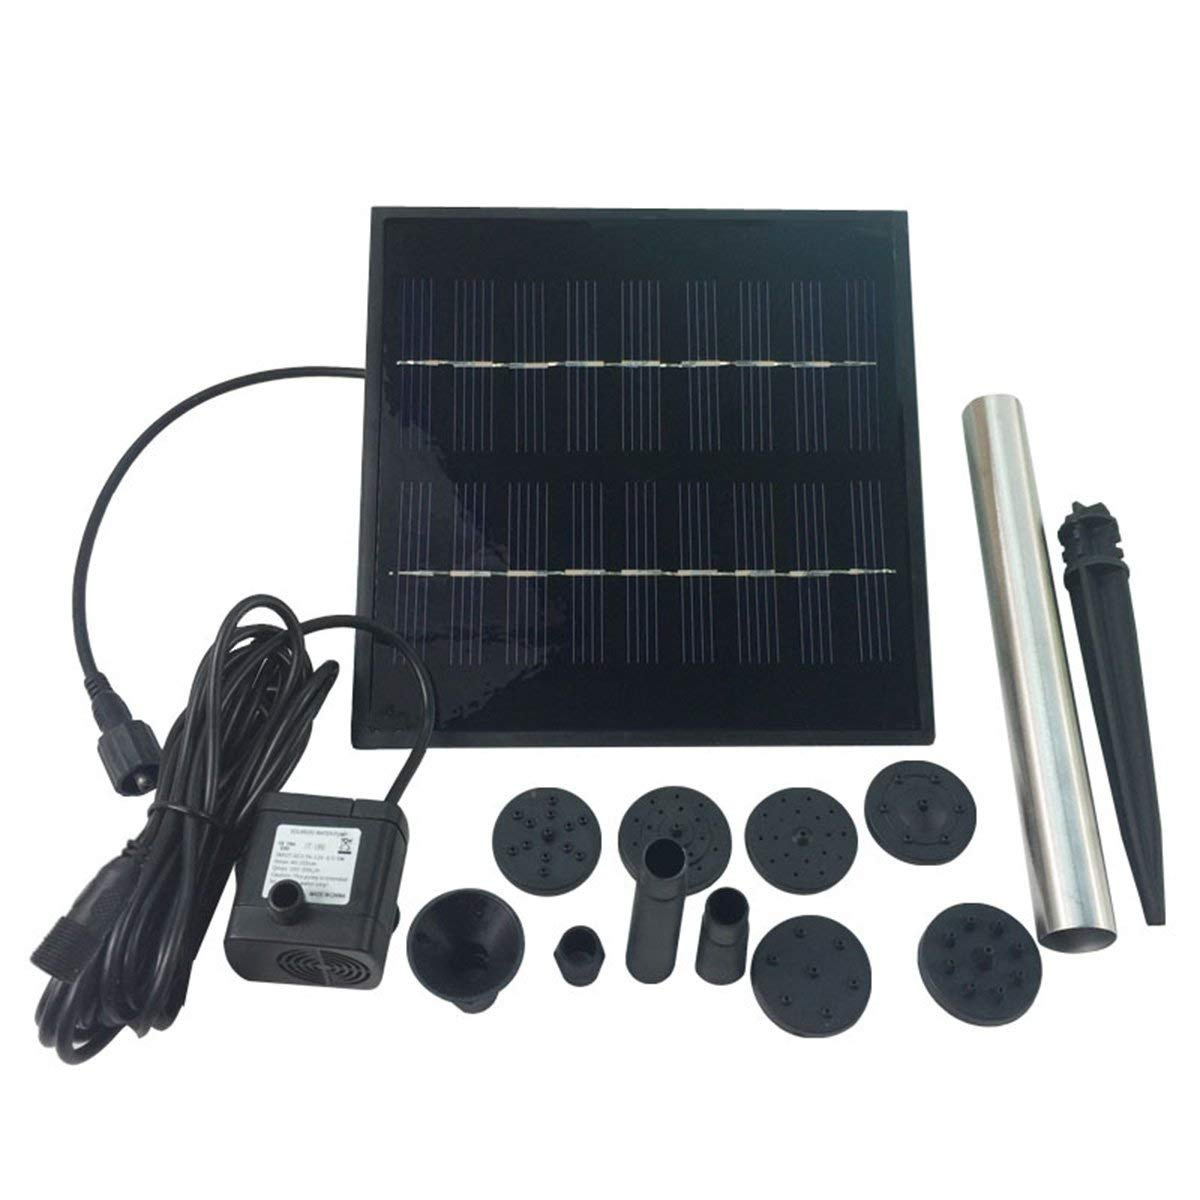 OUNONA Solar Water Pump Outdoor Watering Submersible Water Fountain for Pond Pool Aquarium Fountains Spout Garden Patio 1.8 W